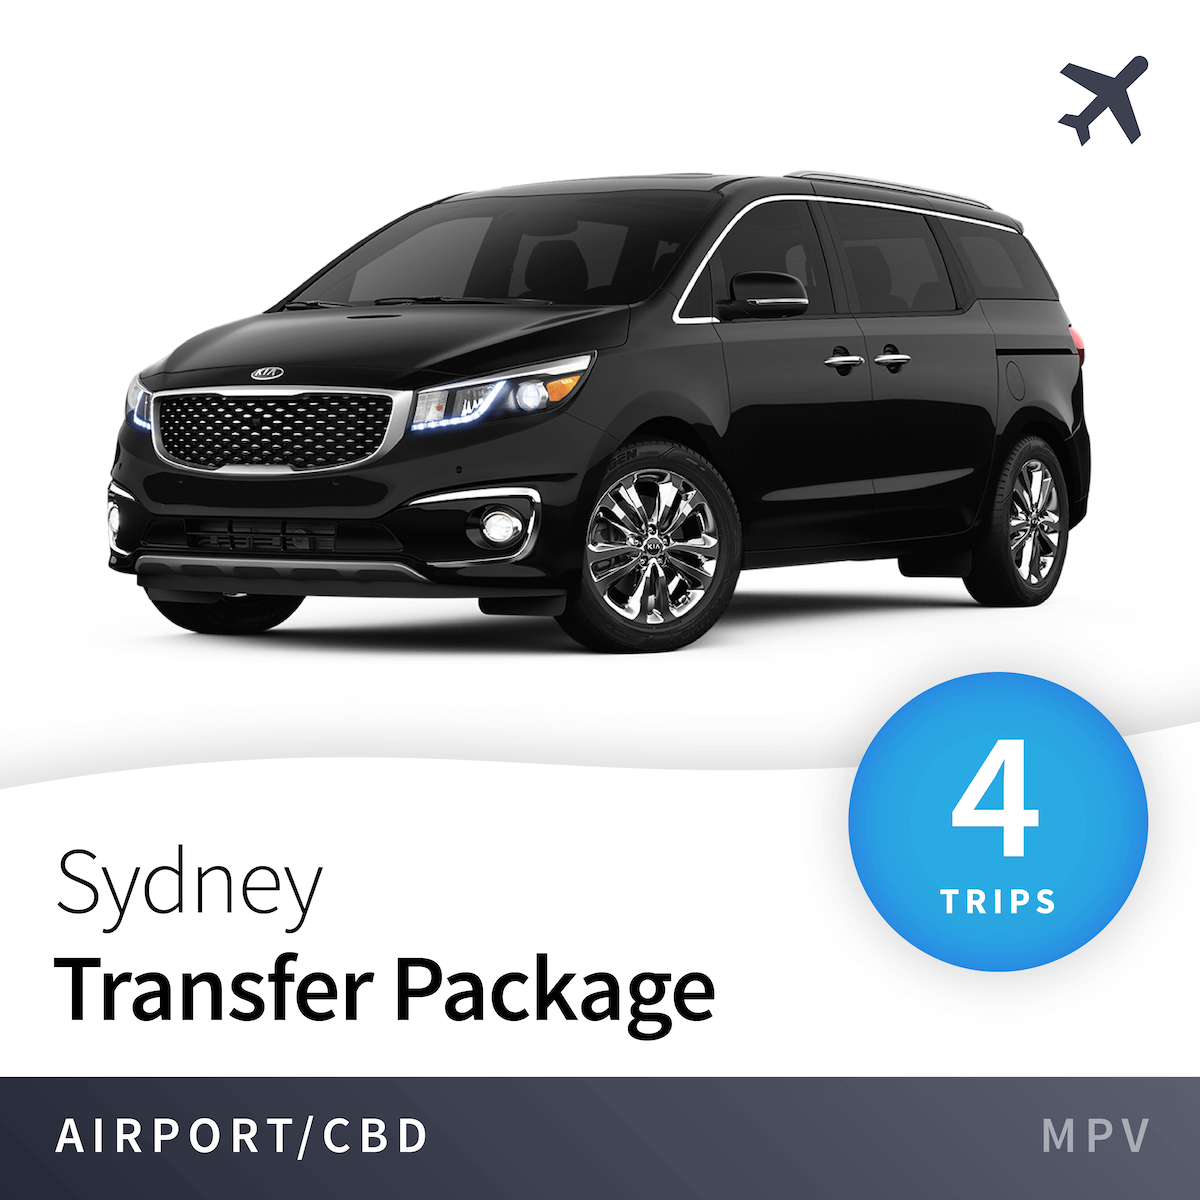 Sydney Airport Transfer Package - MPV (4 Trips) 3